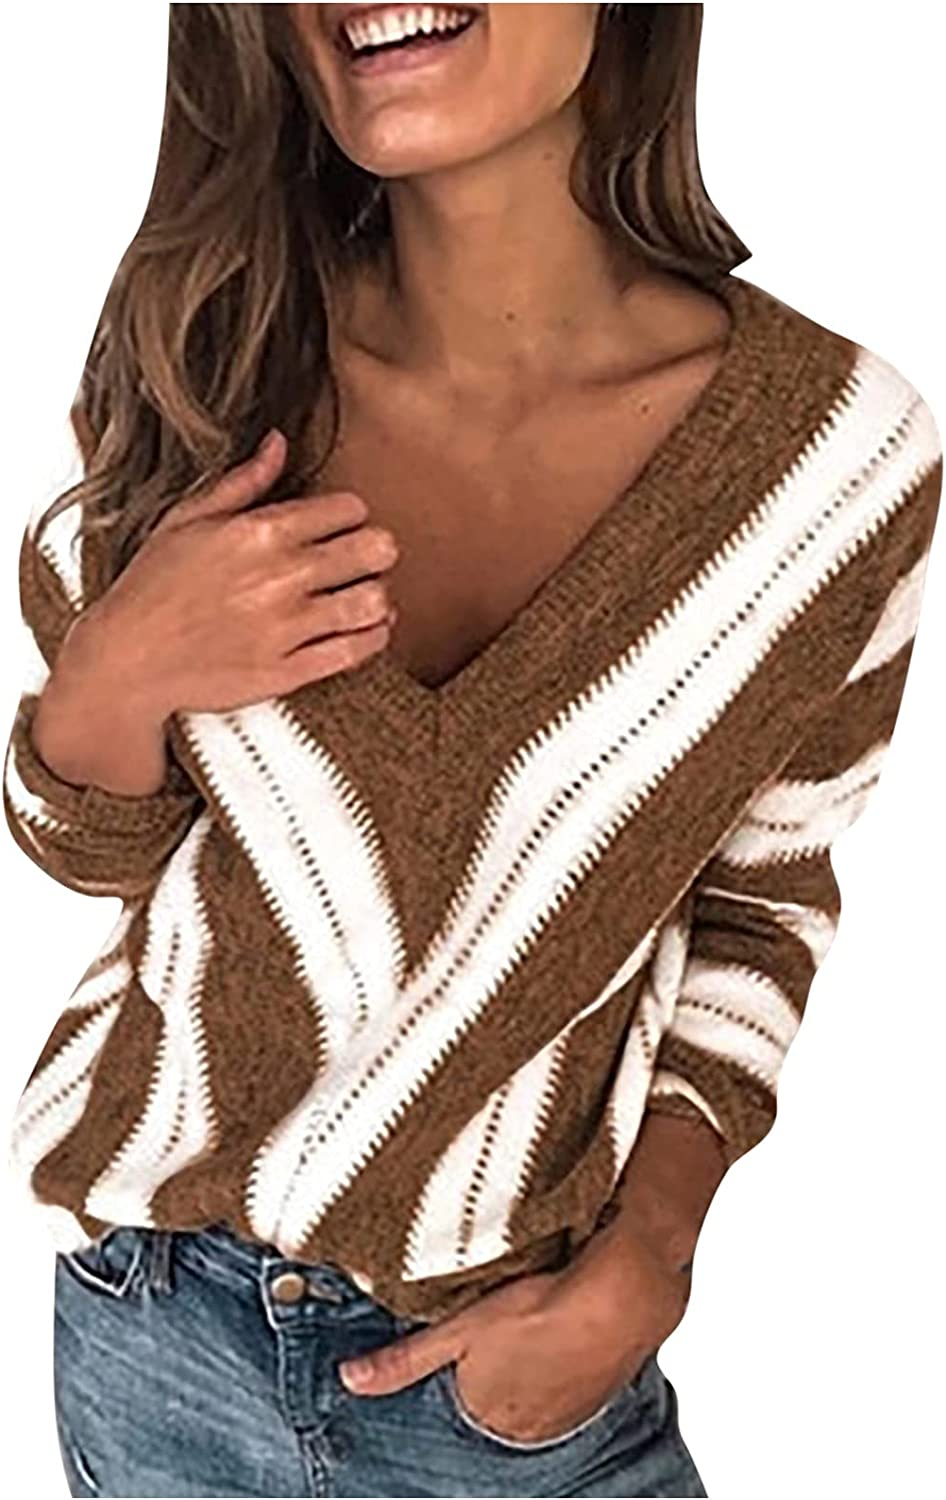 Kanzd Sweaters for Women Fashion V-Neck Long Sleeve Stripe Print Fall Sweaters Loose Fit Blouse Tops Sweatshirts Tunic